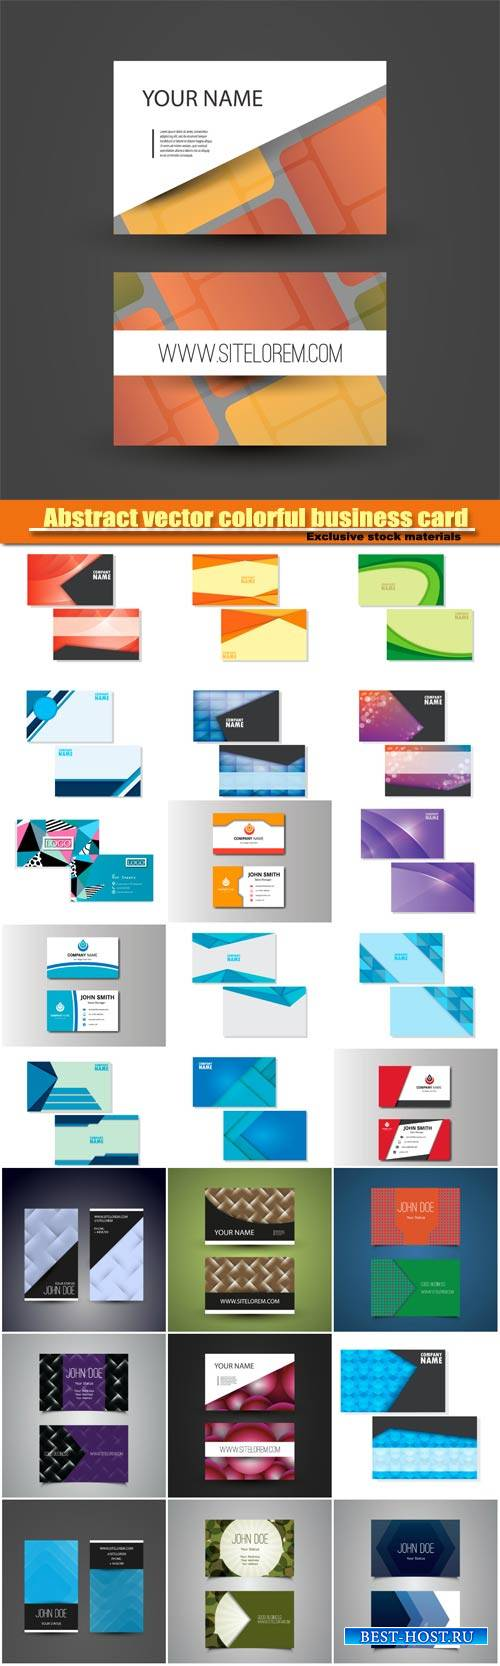 Abstract vector colorful business card template